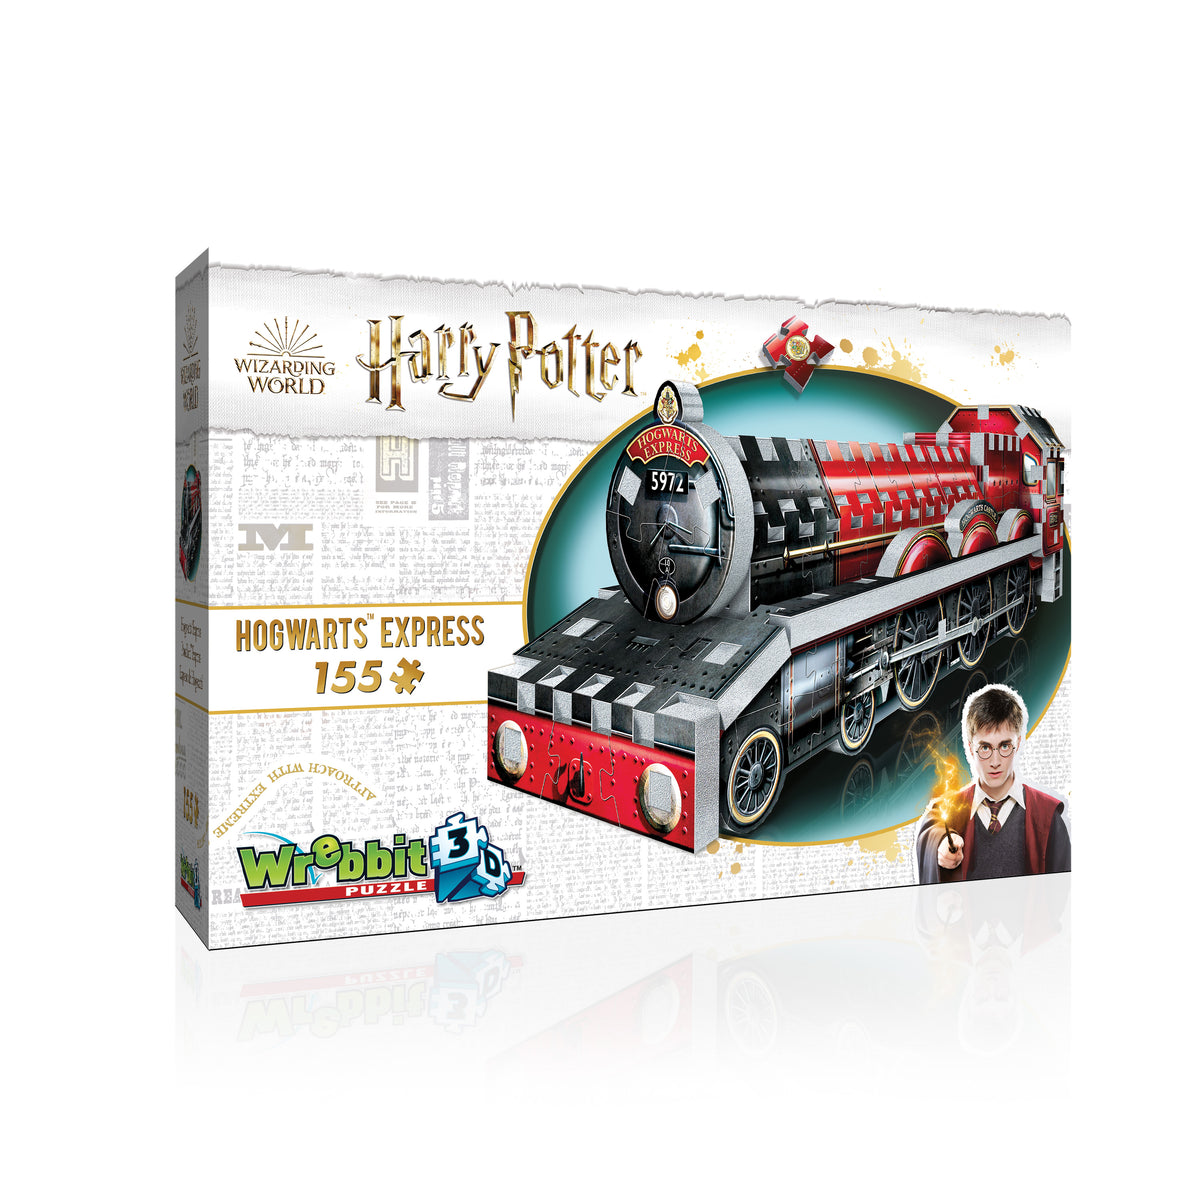 Harry Potter Hogwarts Express 155pcs  Wrebitt 3D Puzzle